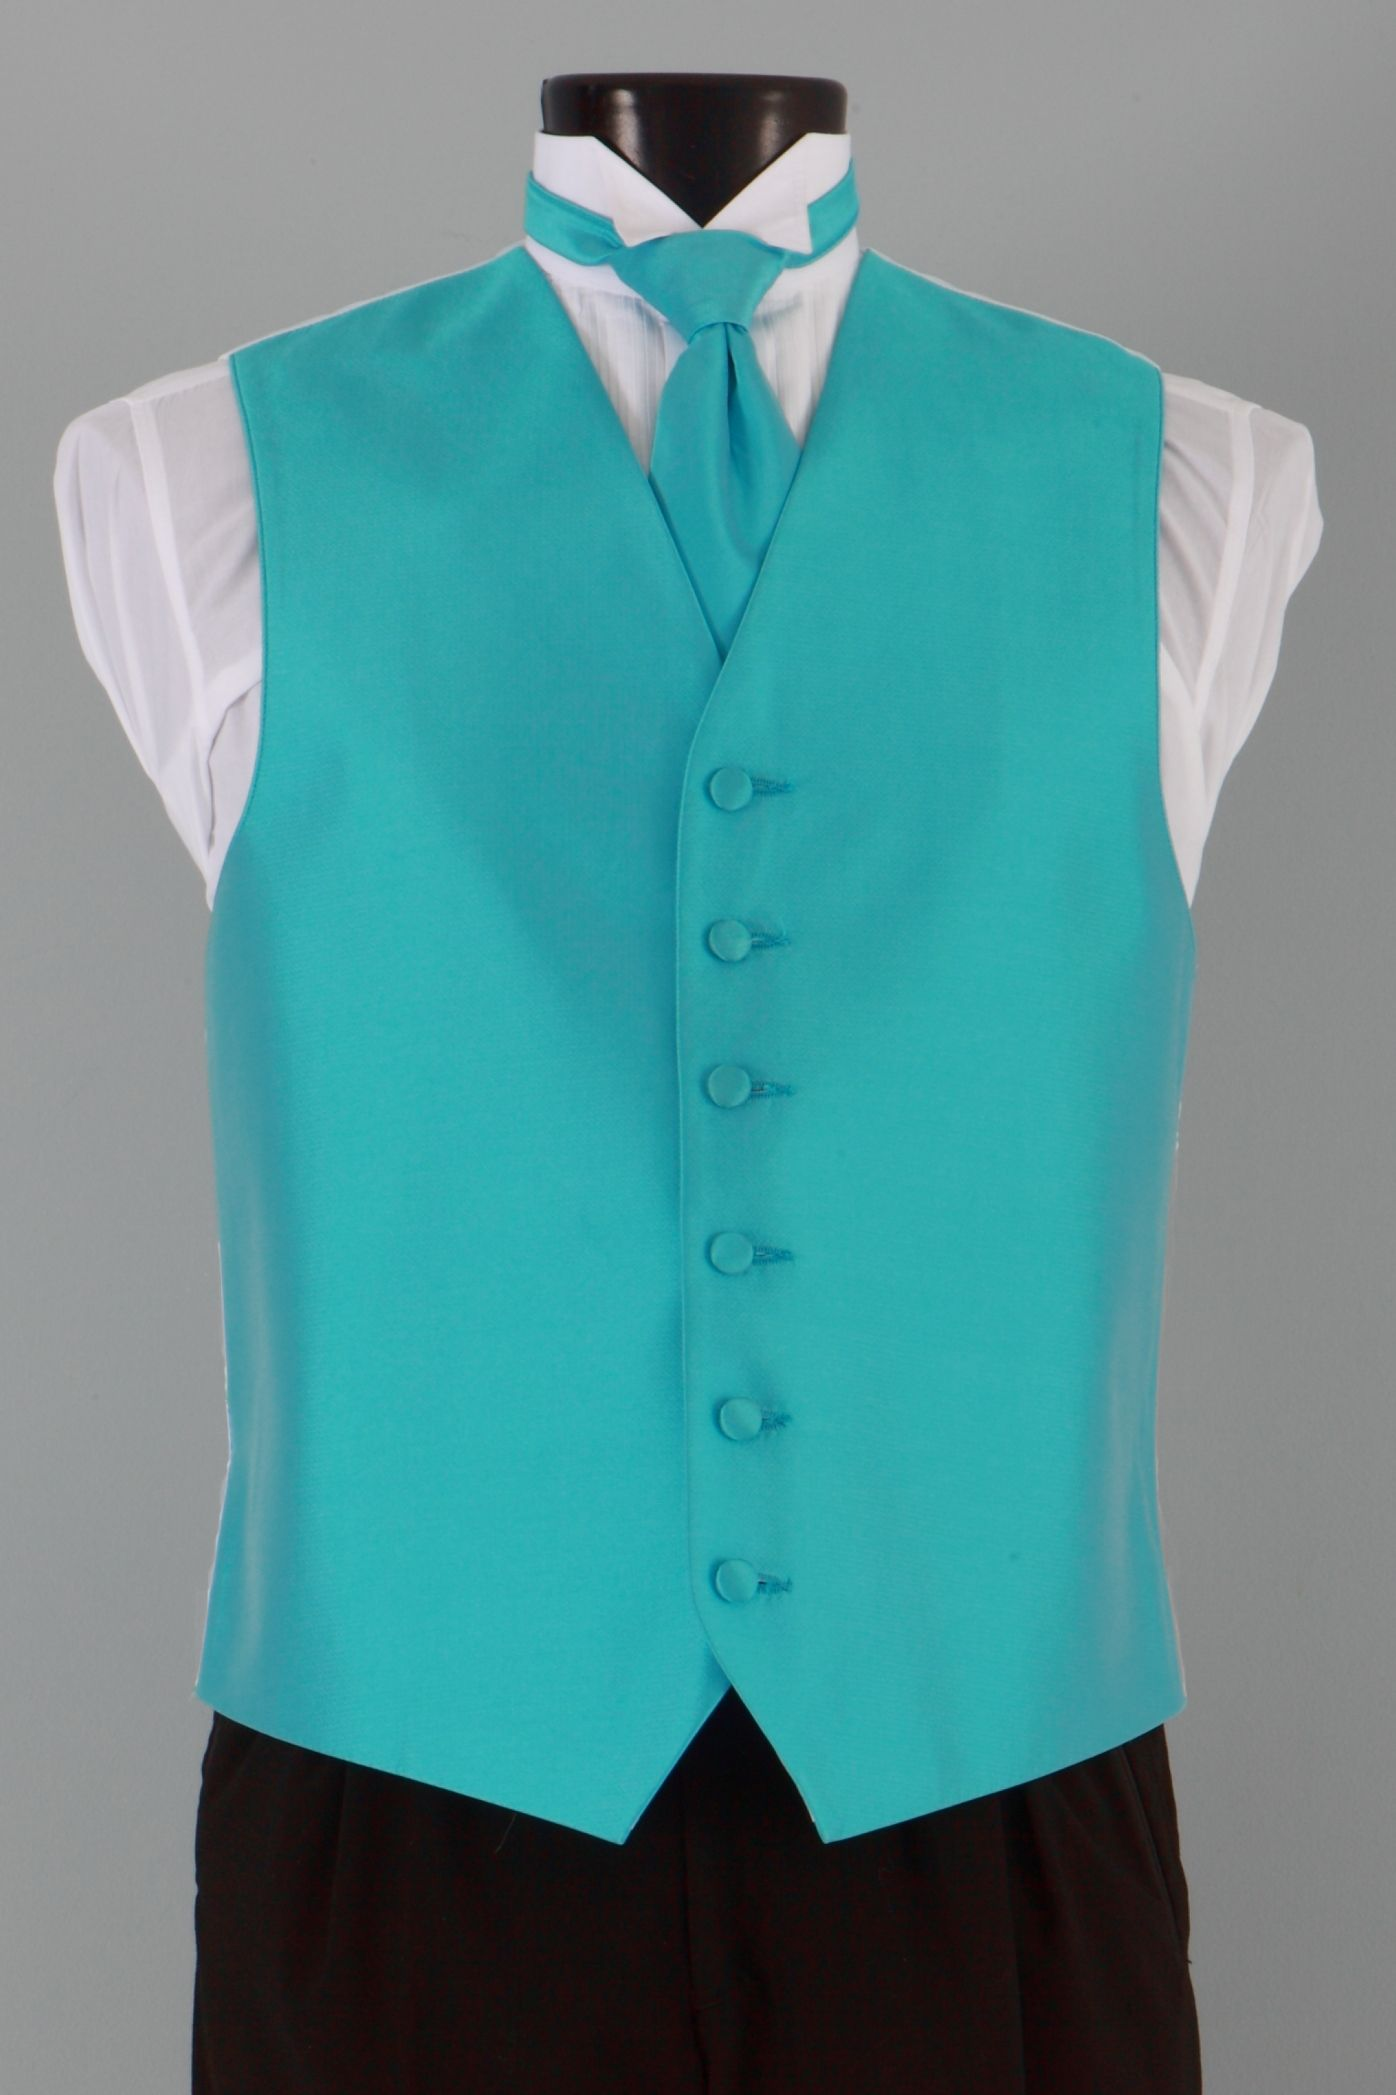 Dunhill Tuxedos Aries Collection Turquoise Vest 2701 | Blues, Aquas ...